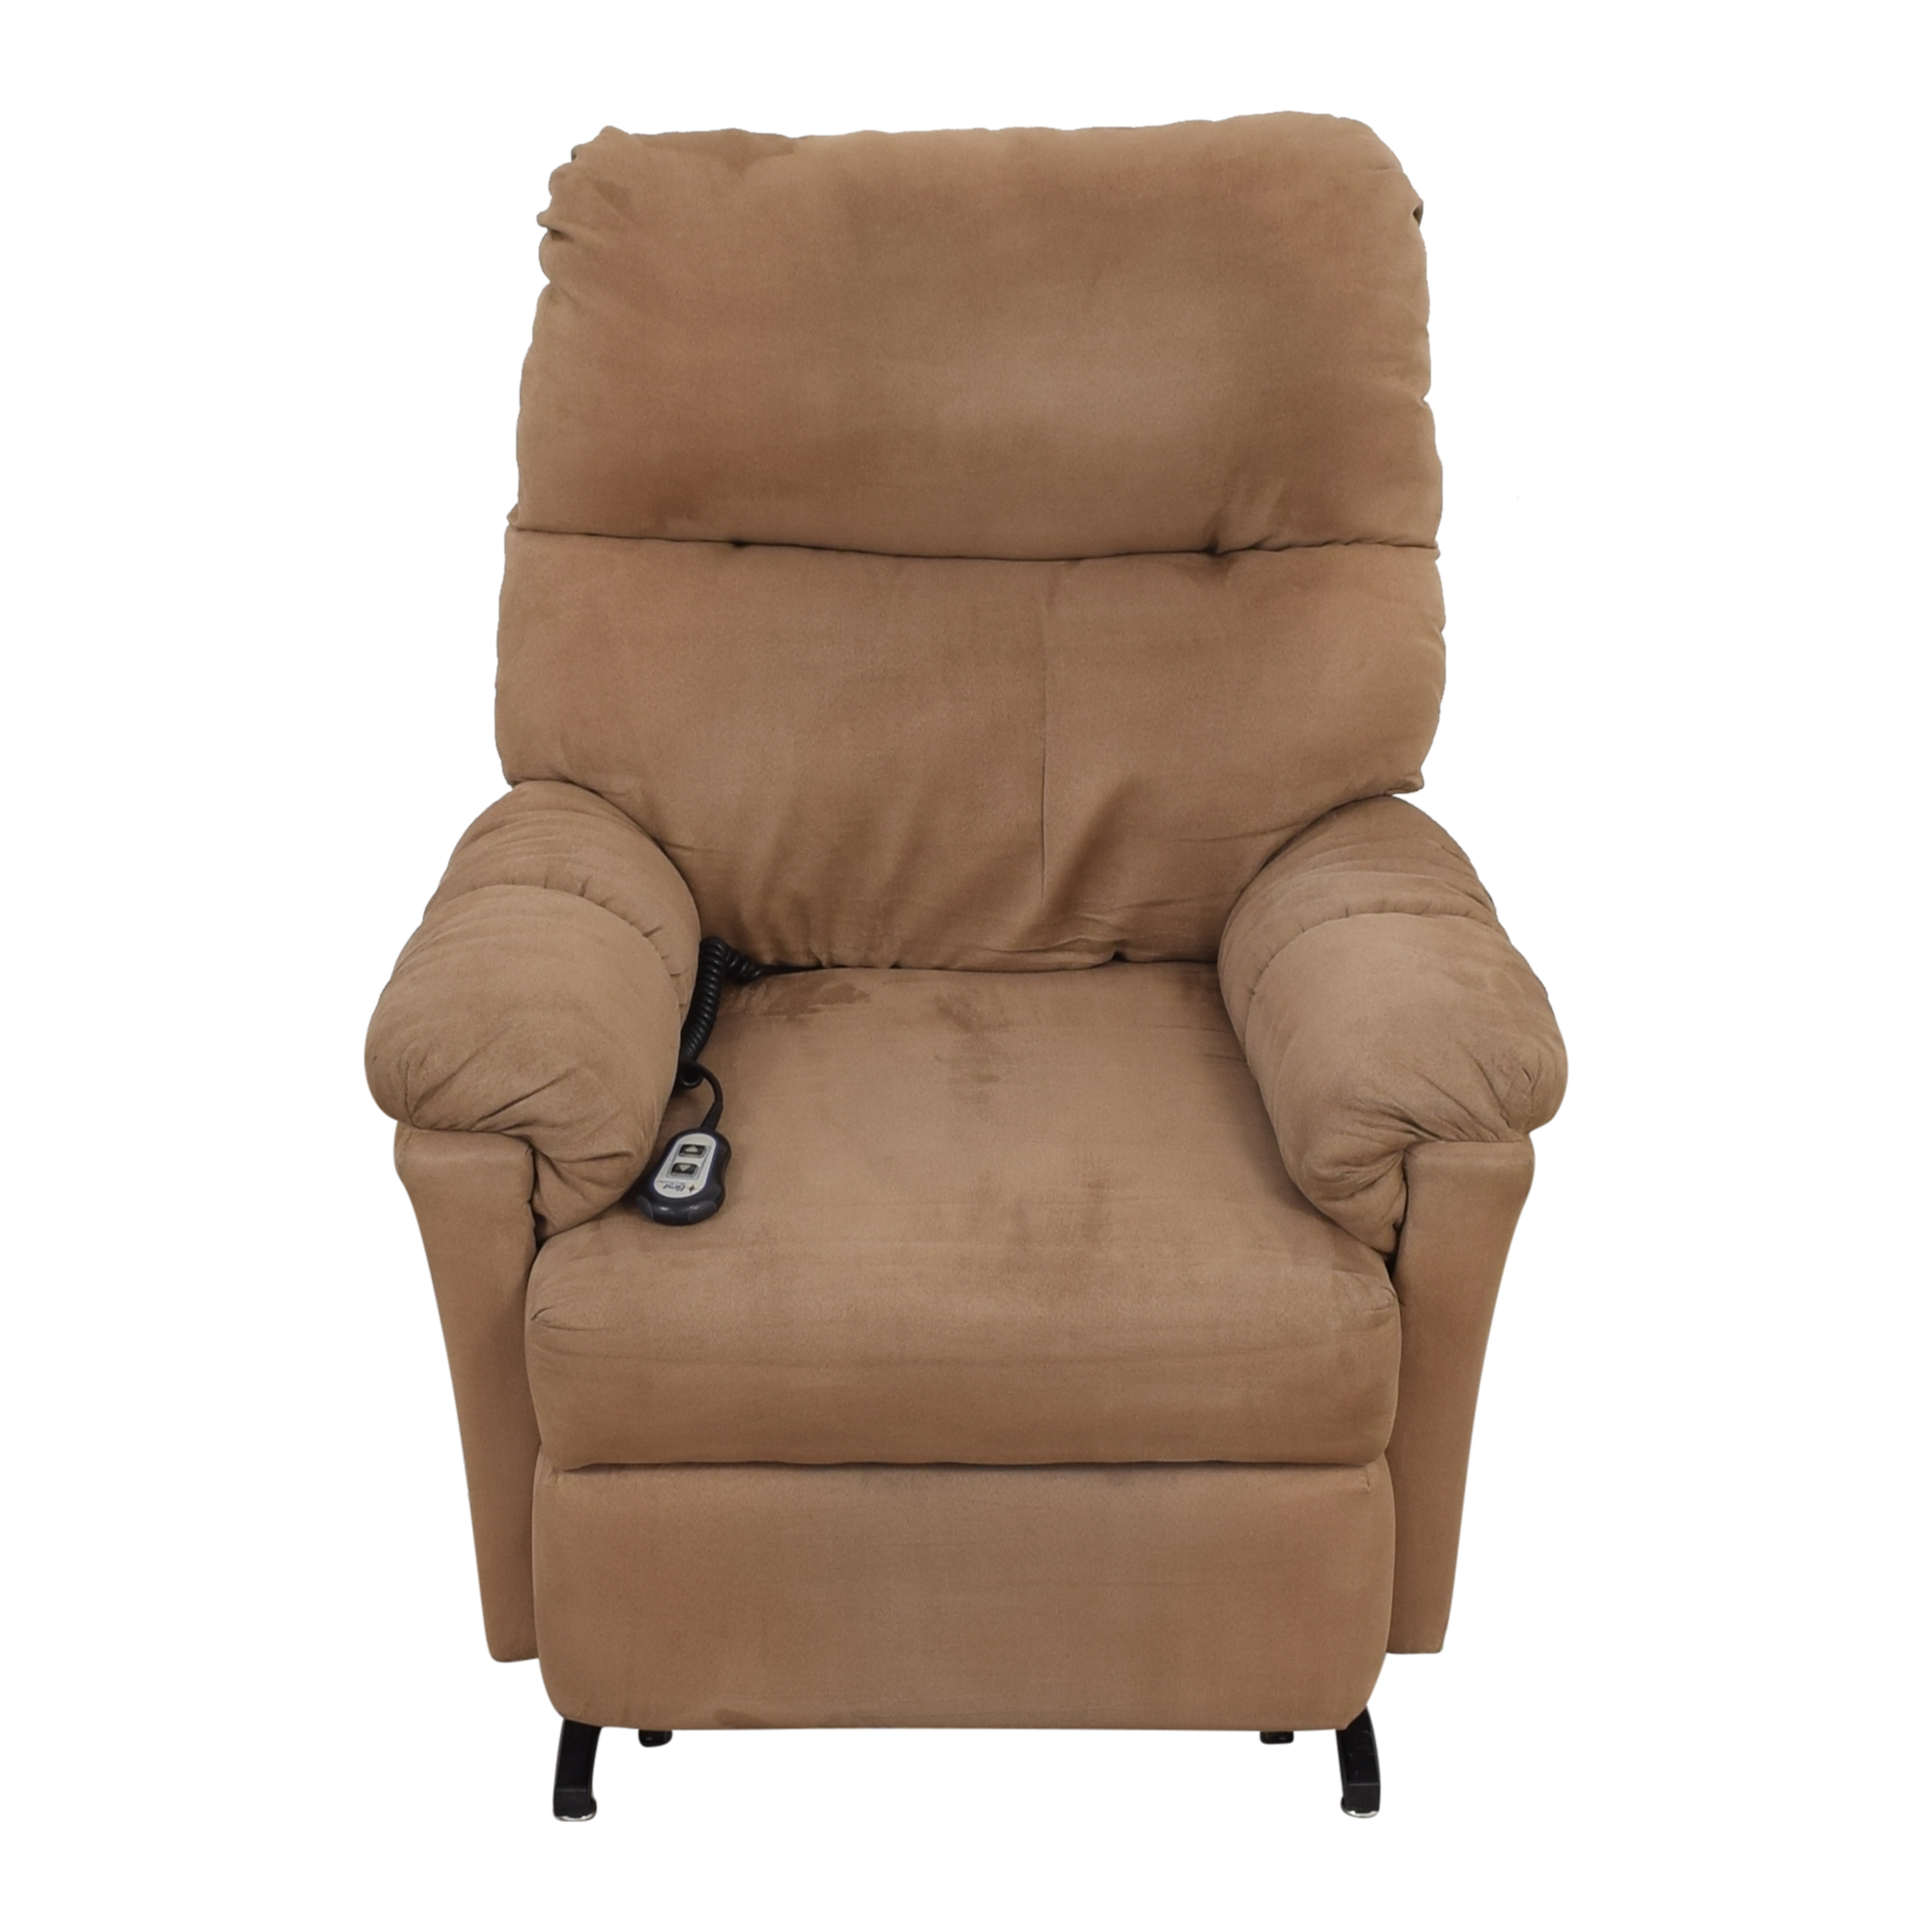 Best Chairs Best Chairs Recliner coupon